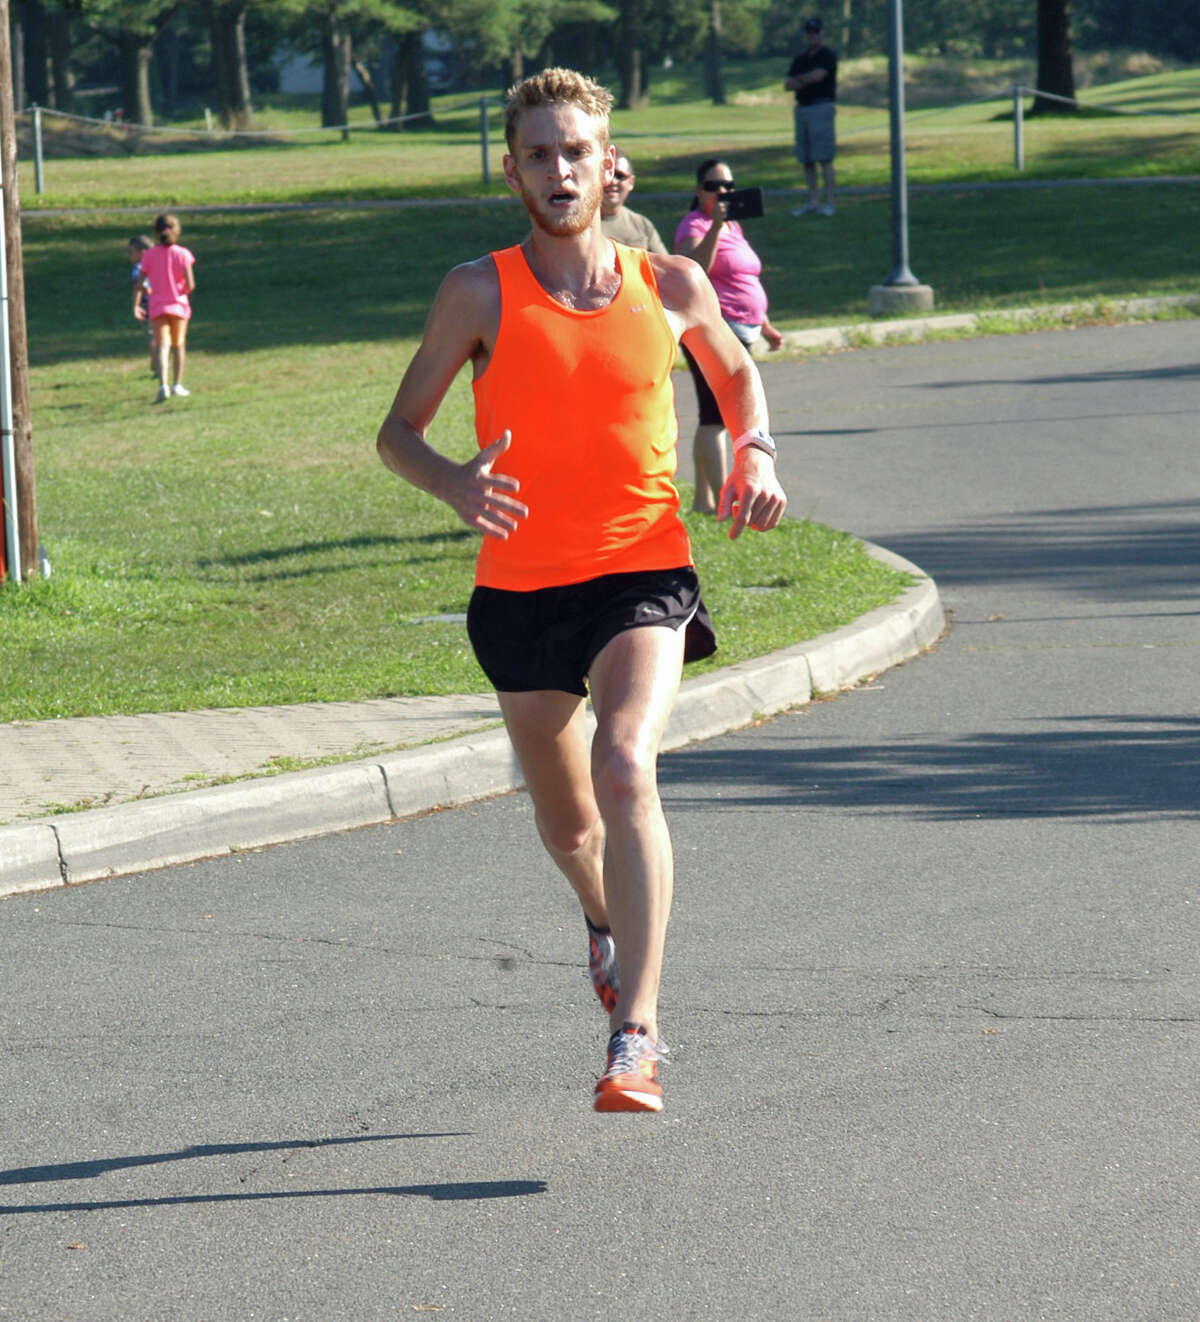 Luke McCambley, 23, of New York, races to a first-place finish at the Westport Road Runners Series 4.7-miler on Saturday. McCambley finished the course at Longshore Country Club in 25:41 for his fourth straight win.